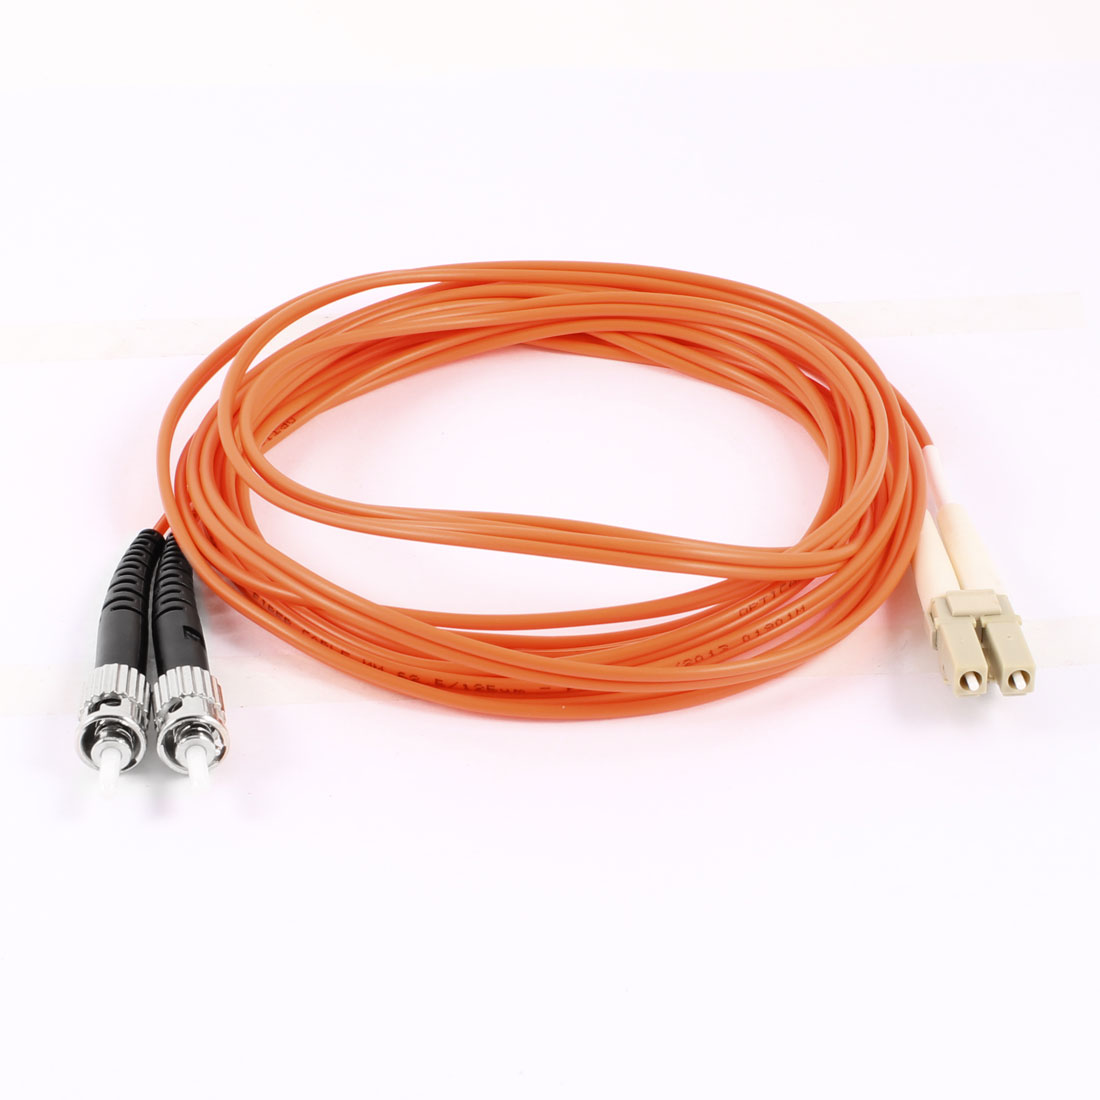 Duplex Multimode 62.5/125 LC/ST Optical Fiber Patch Jump Cable Orange 3 Meters